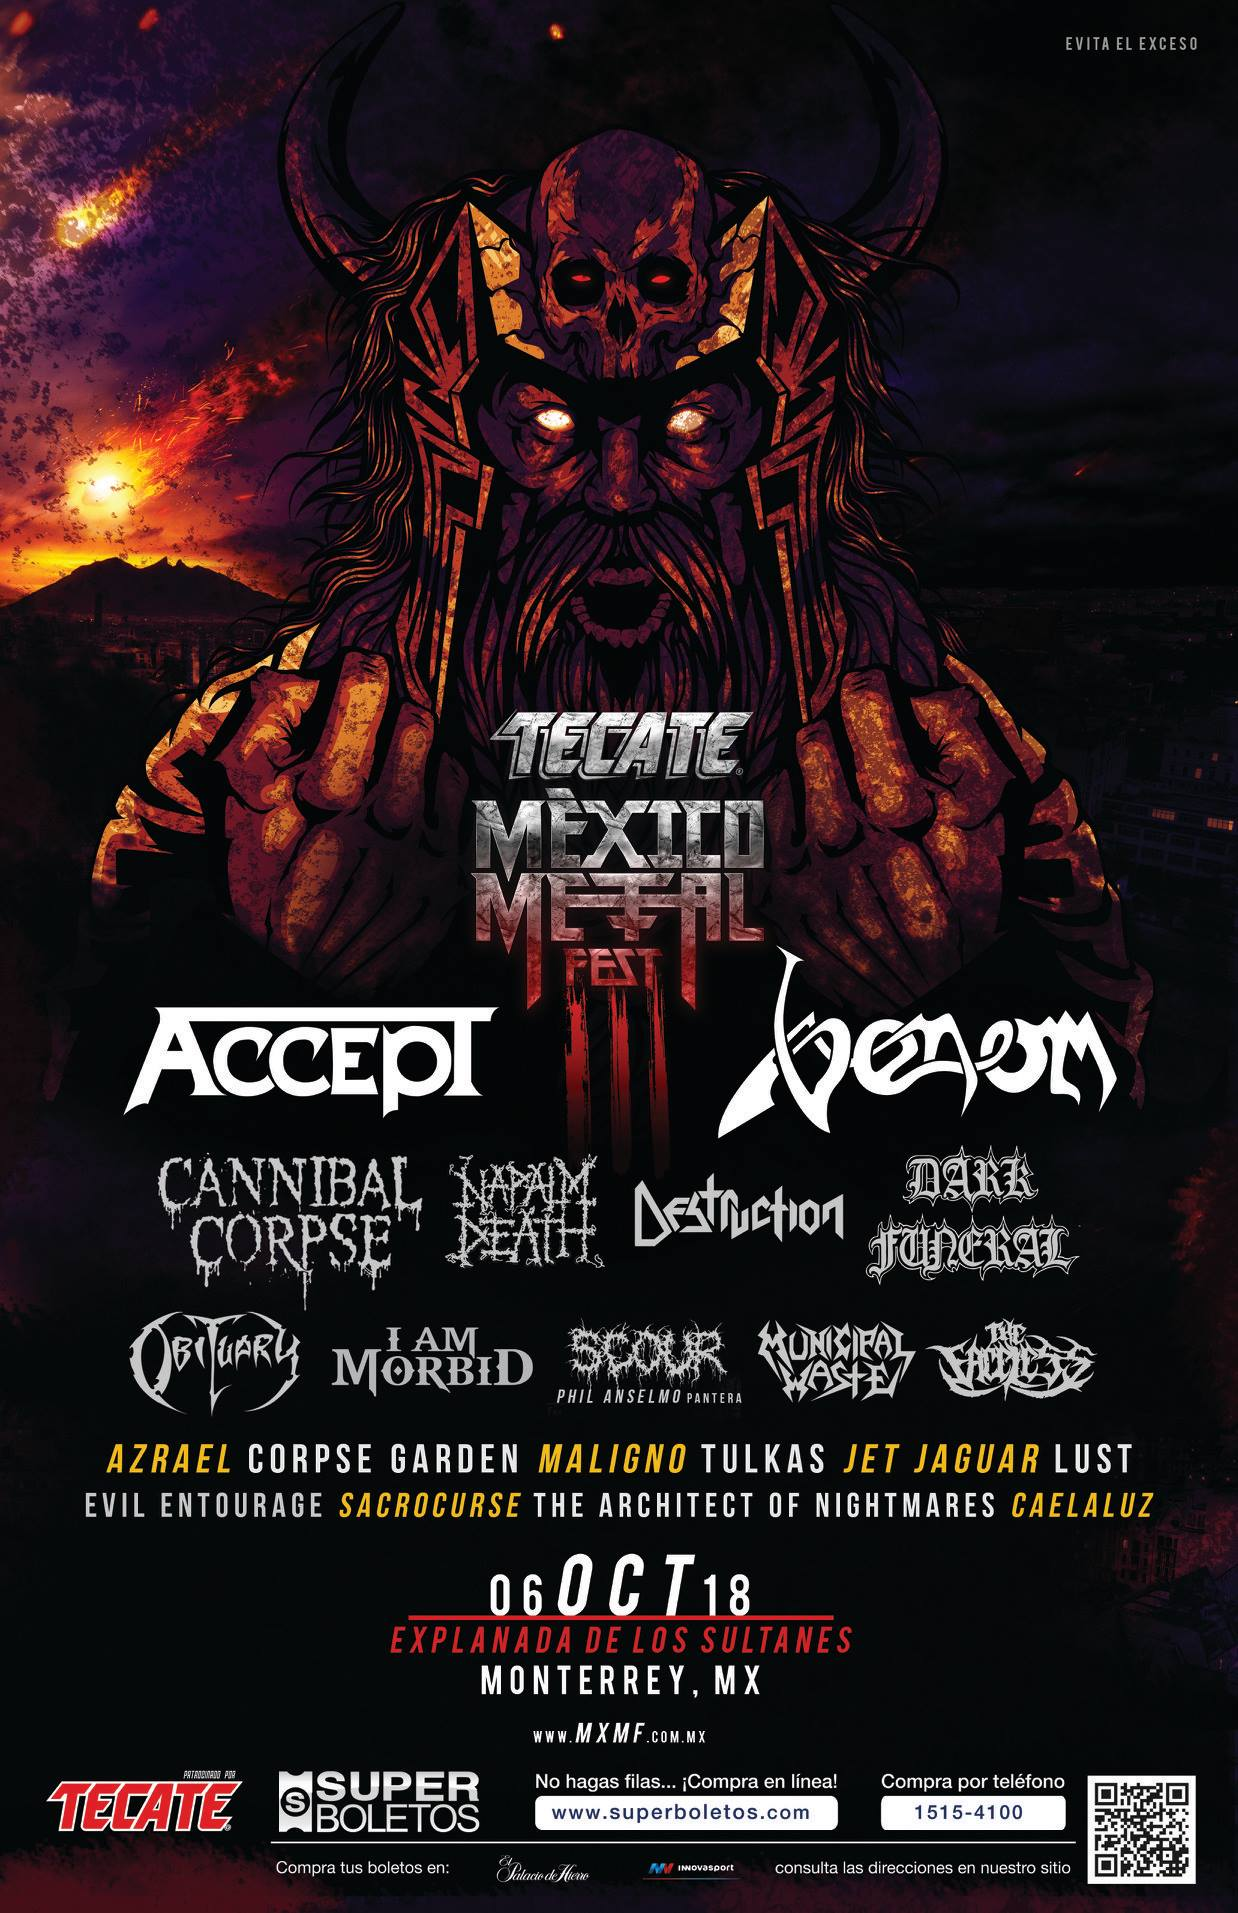 Venom Mexico 2018 festival setlist pictures videos black metal